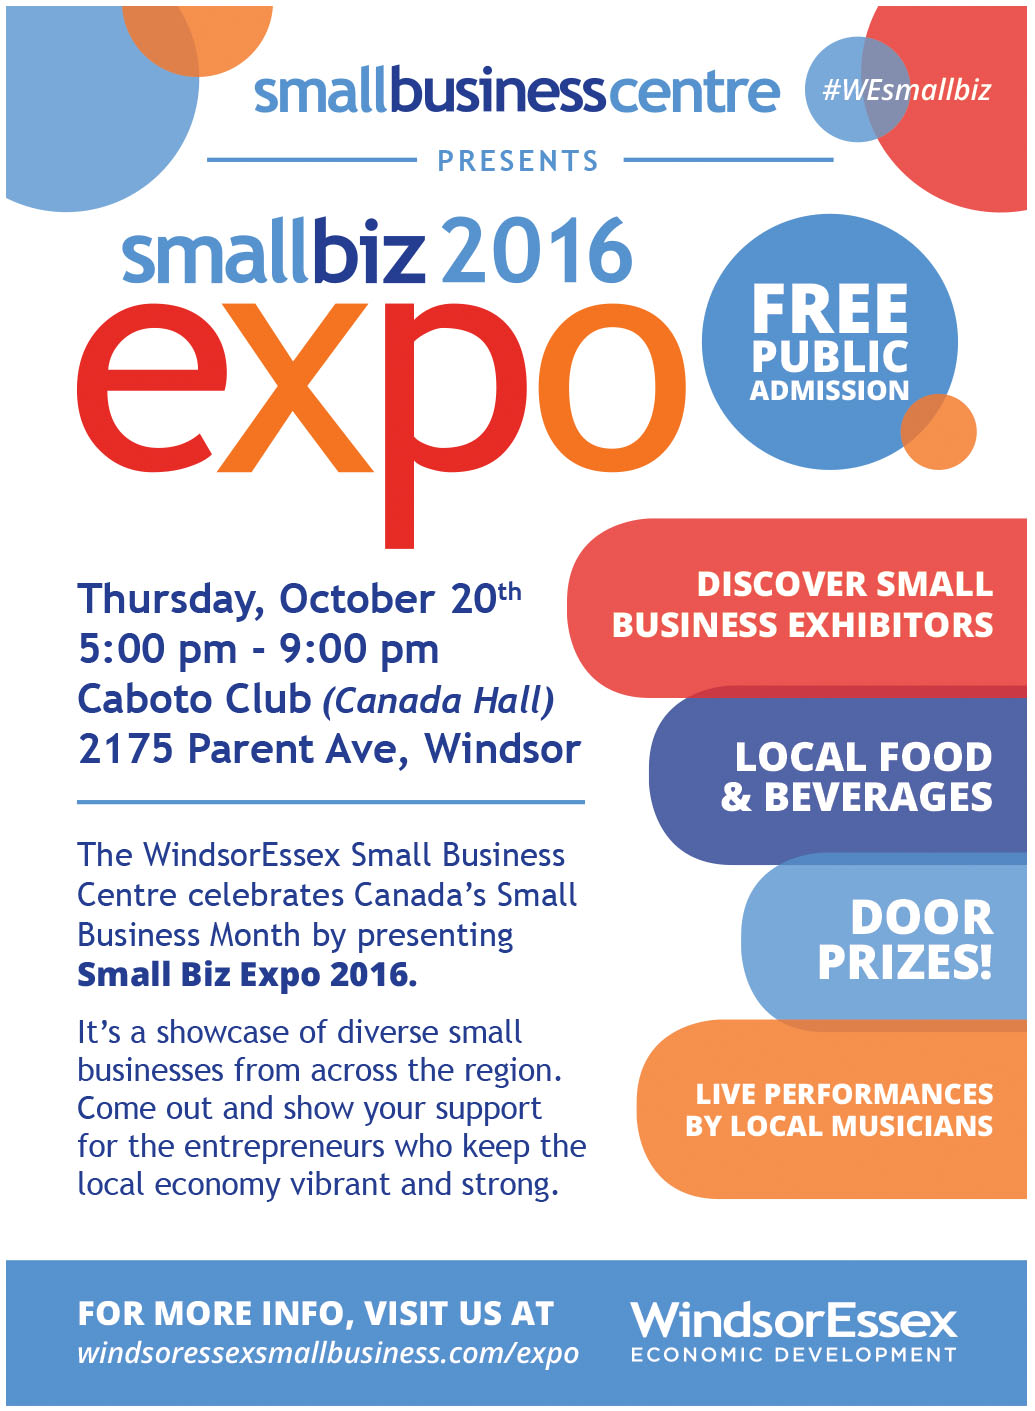 Small Biz Expo 2016 Poster